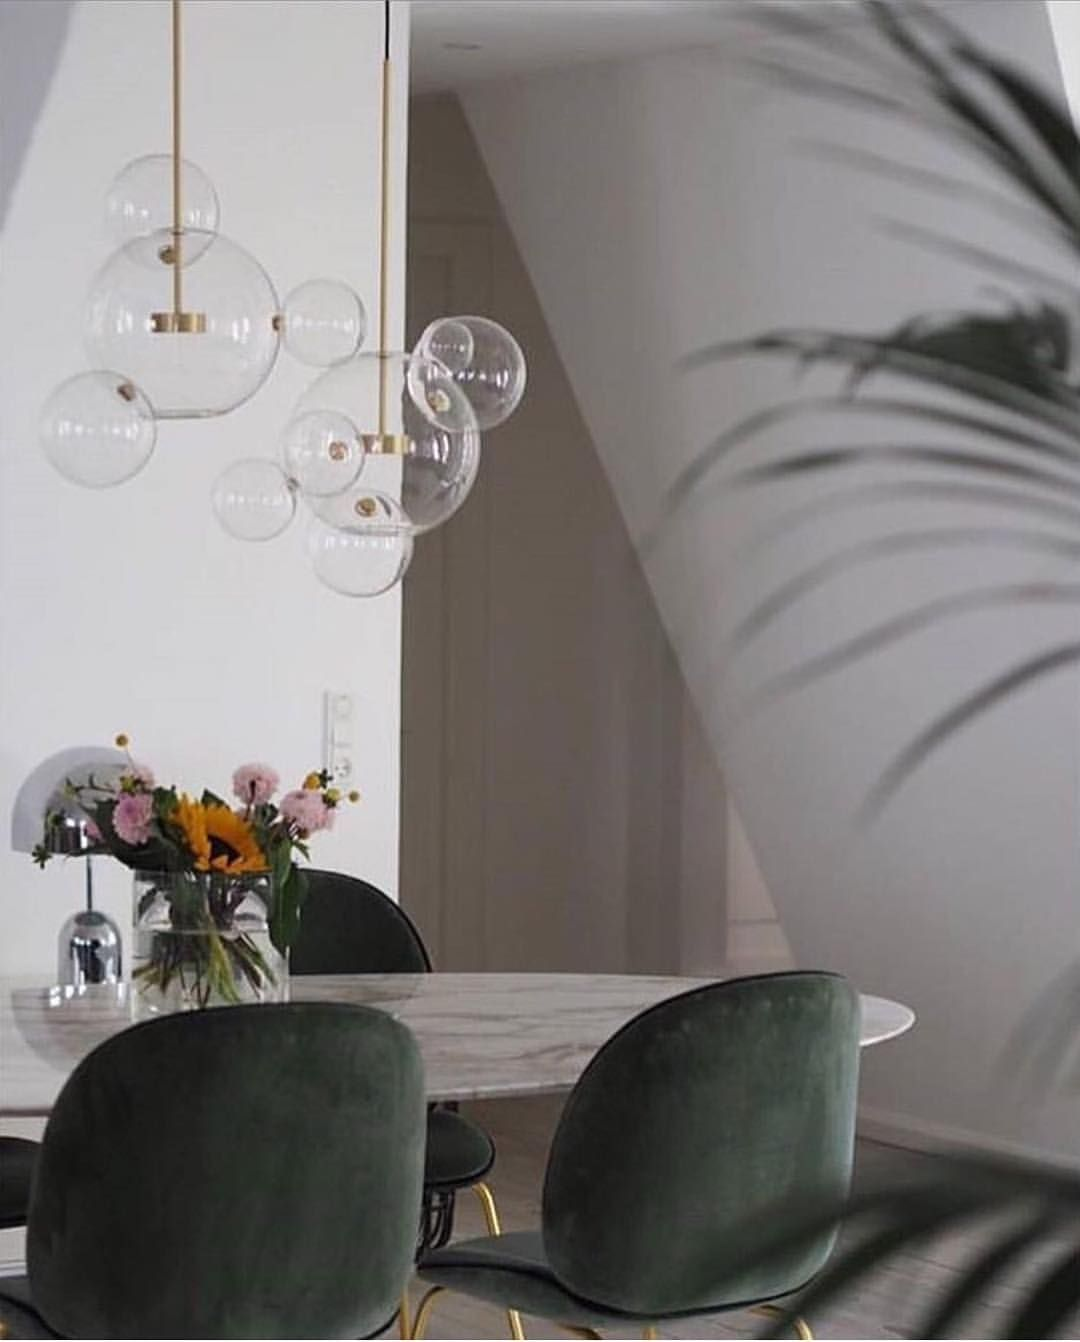 Soft And Sumptuous Beetle Chairs Create A Marvellous Dining Table Scenario!  Photo Via